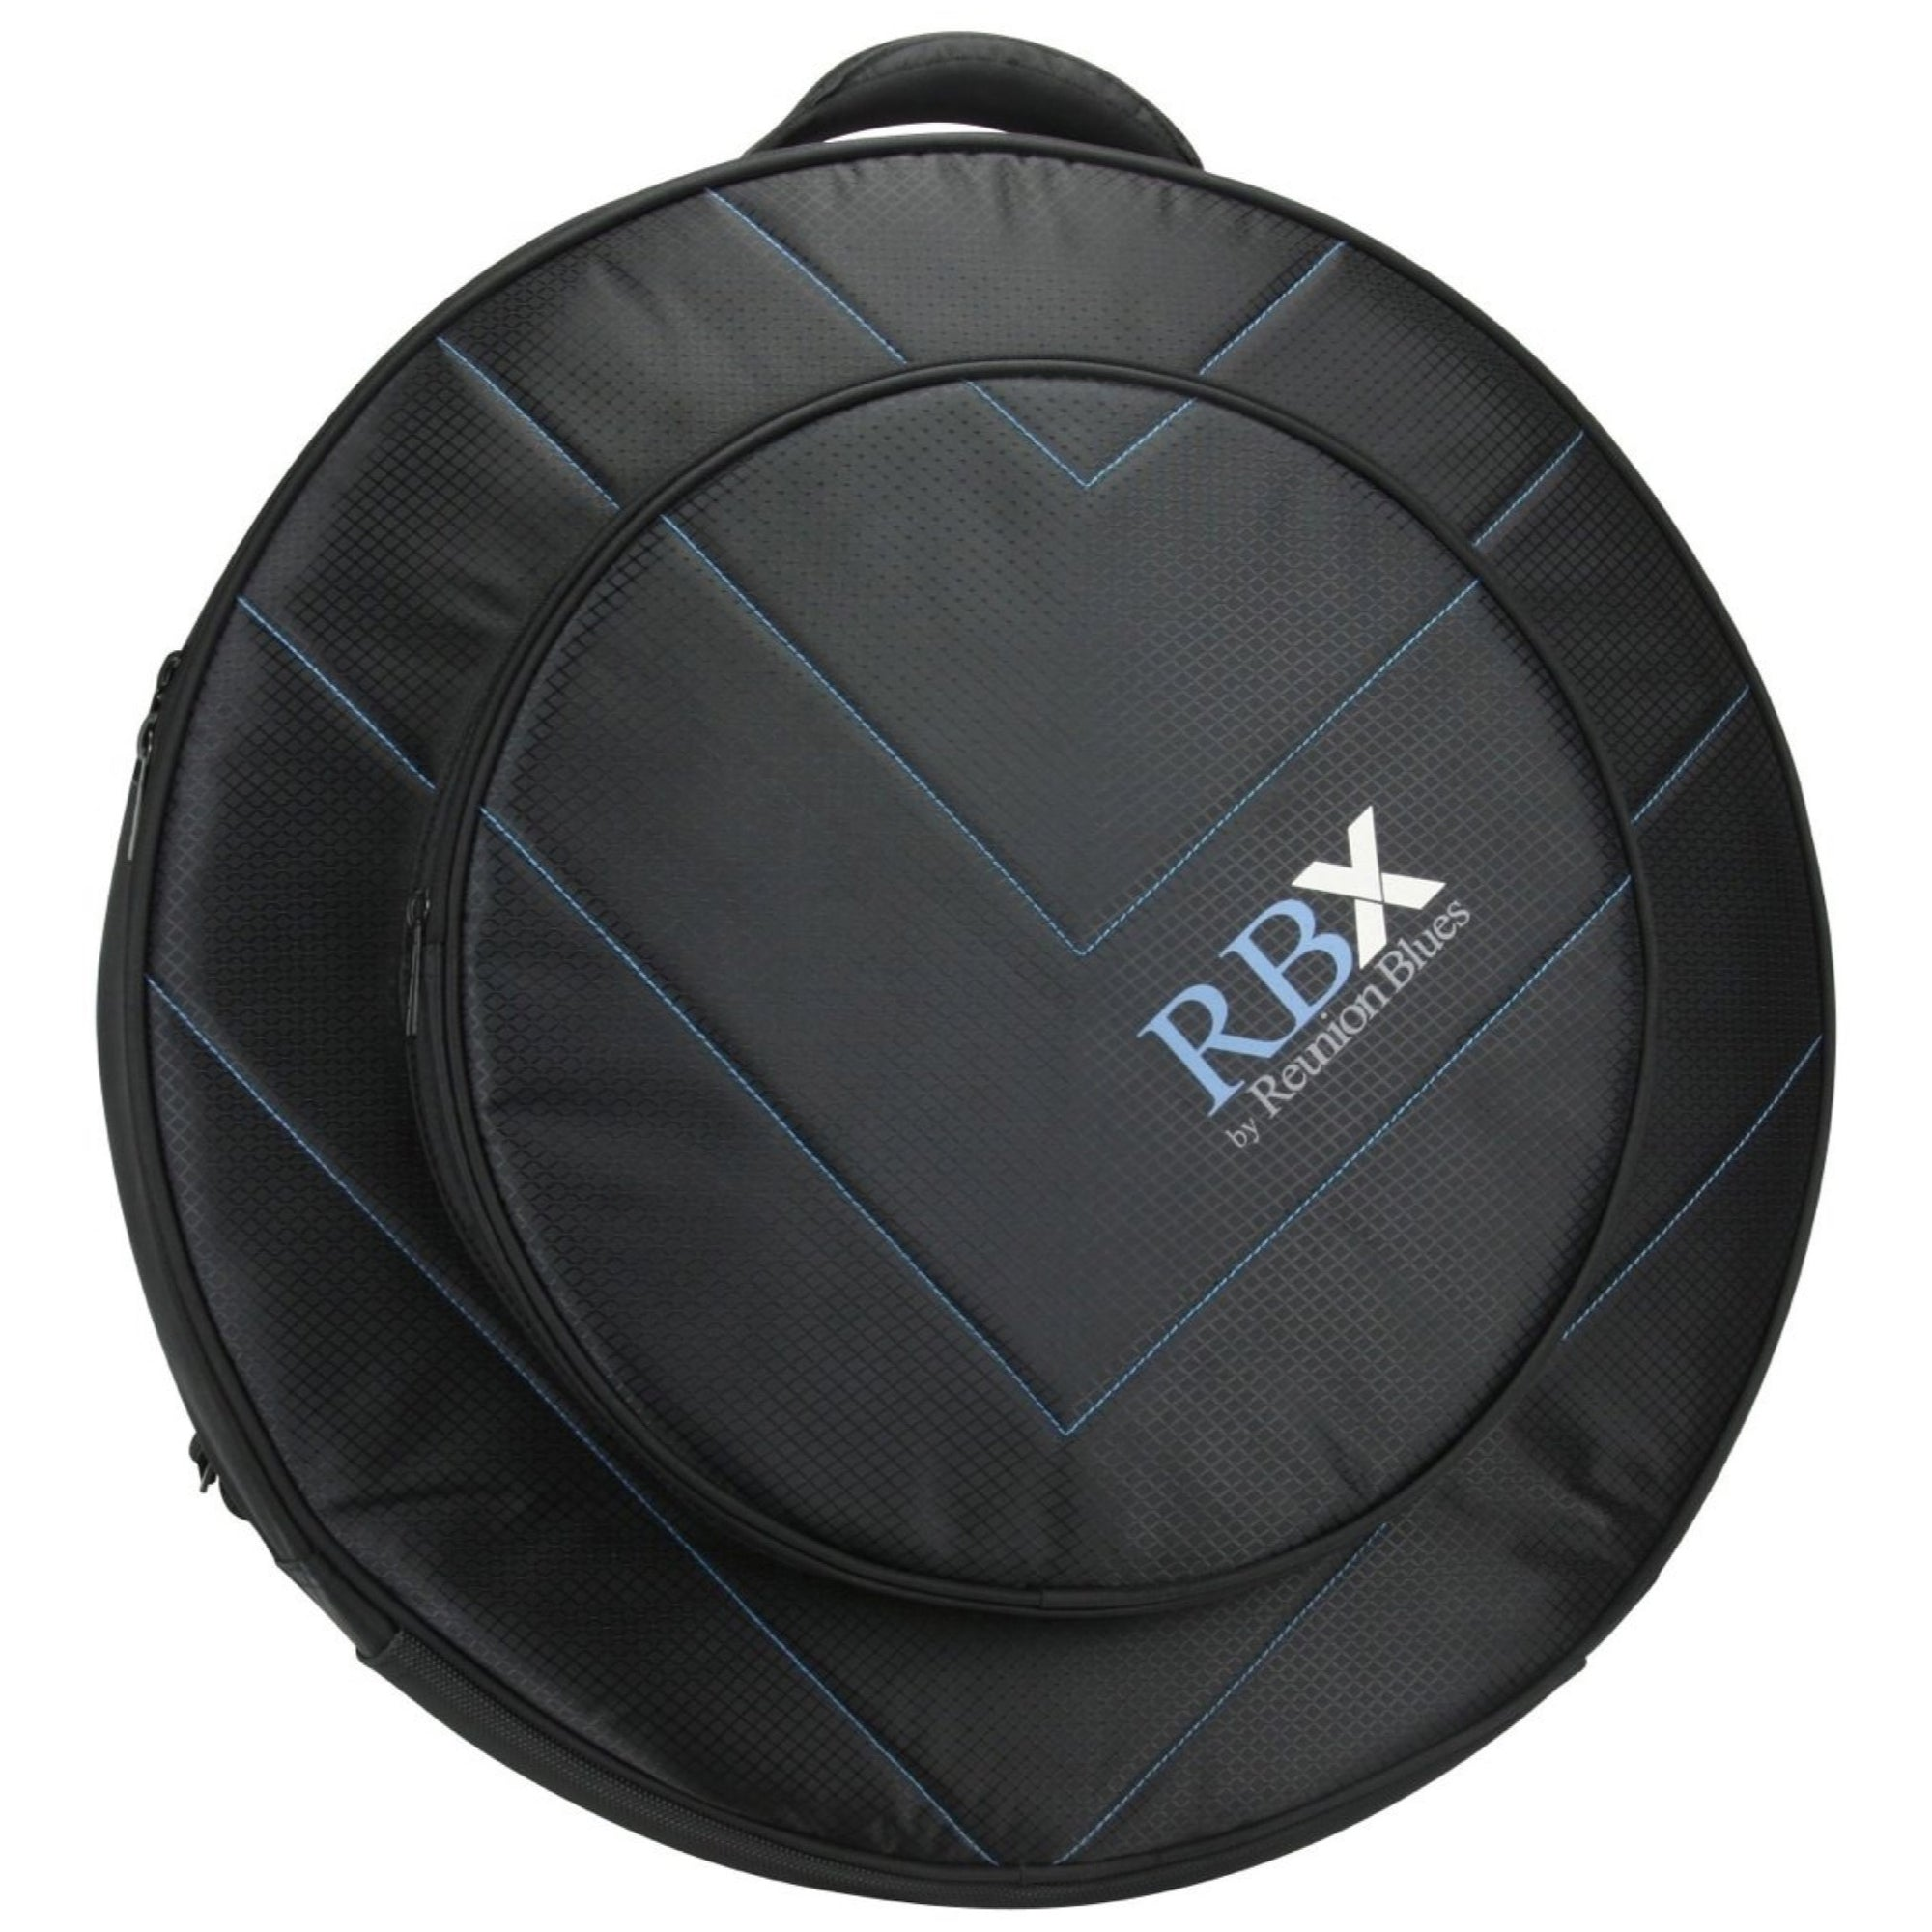 Reunion Blues RBXCM22 Drum Cymbal Bag, 22 Inch